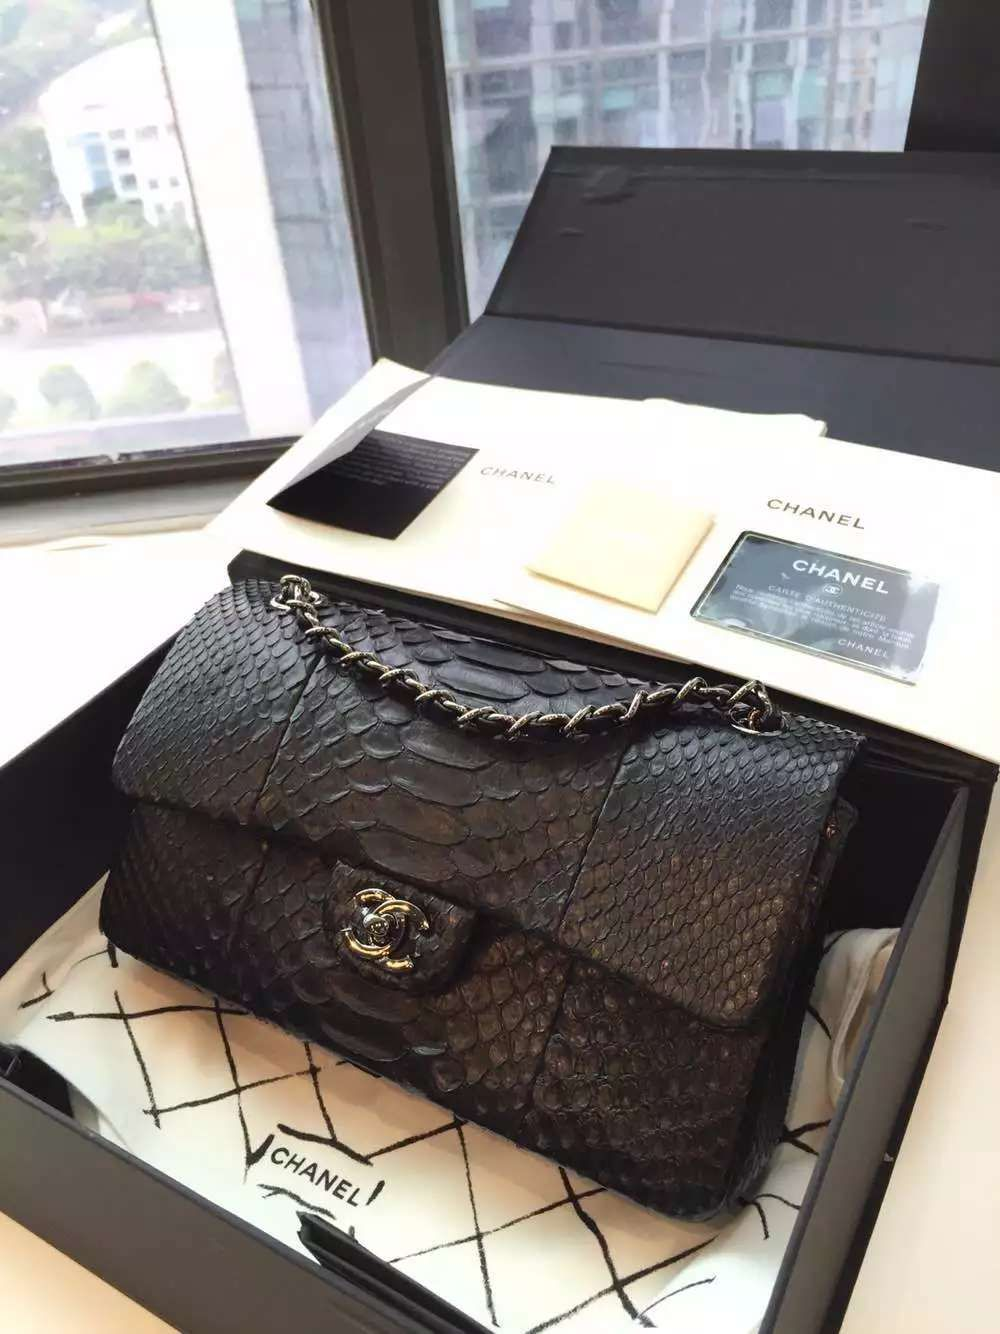 chanel Bag, ID : 31760(FORSALE:a@yybags.com), chanel com handbags, chanel designer, chanel bags, chanel discount handbags, vintage chanel store, chanel leather laptop backpack, chanel tignanello handbags, chanel bags shop online usa, chanel bags on sale online, chanel stylish backpacks, chanel yellow handbags, chanel genuine leather belts #chanelBag #chanel #chanel #travel #handbags